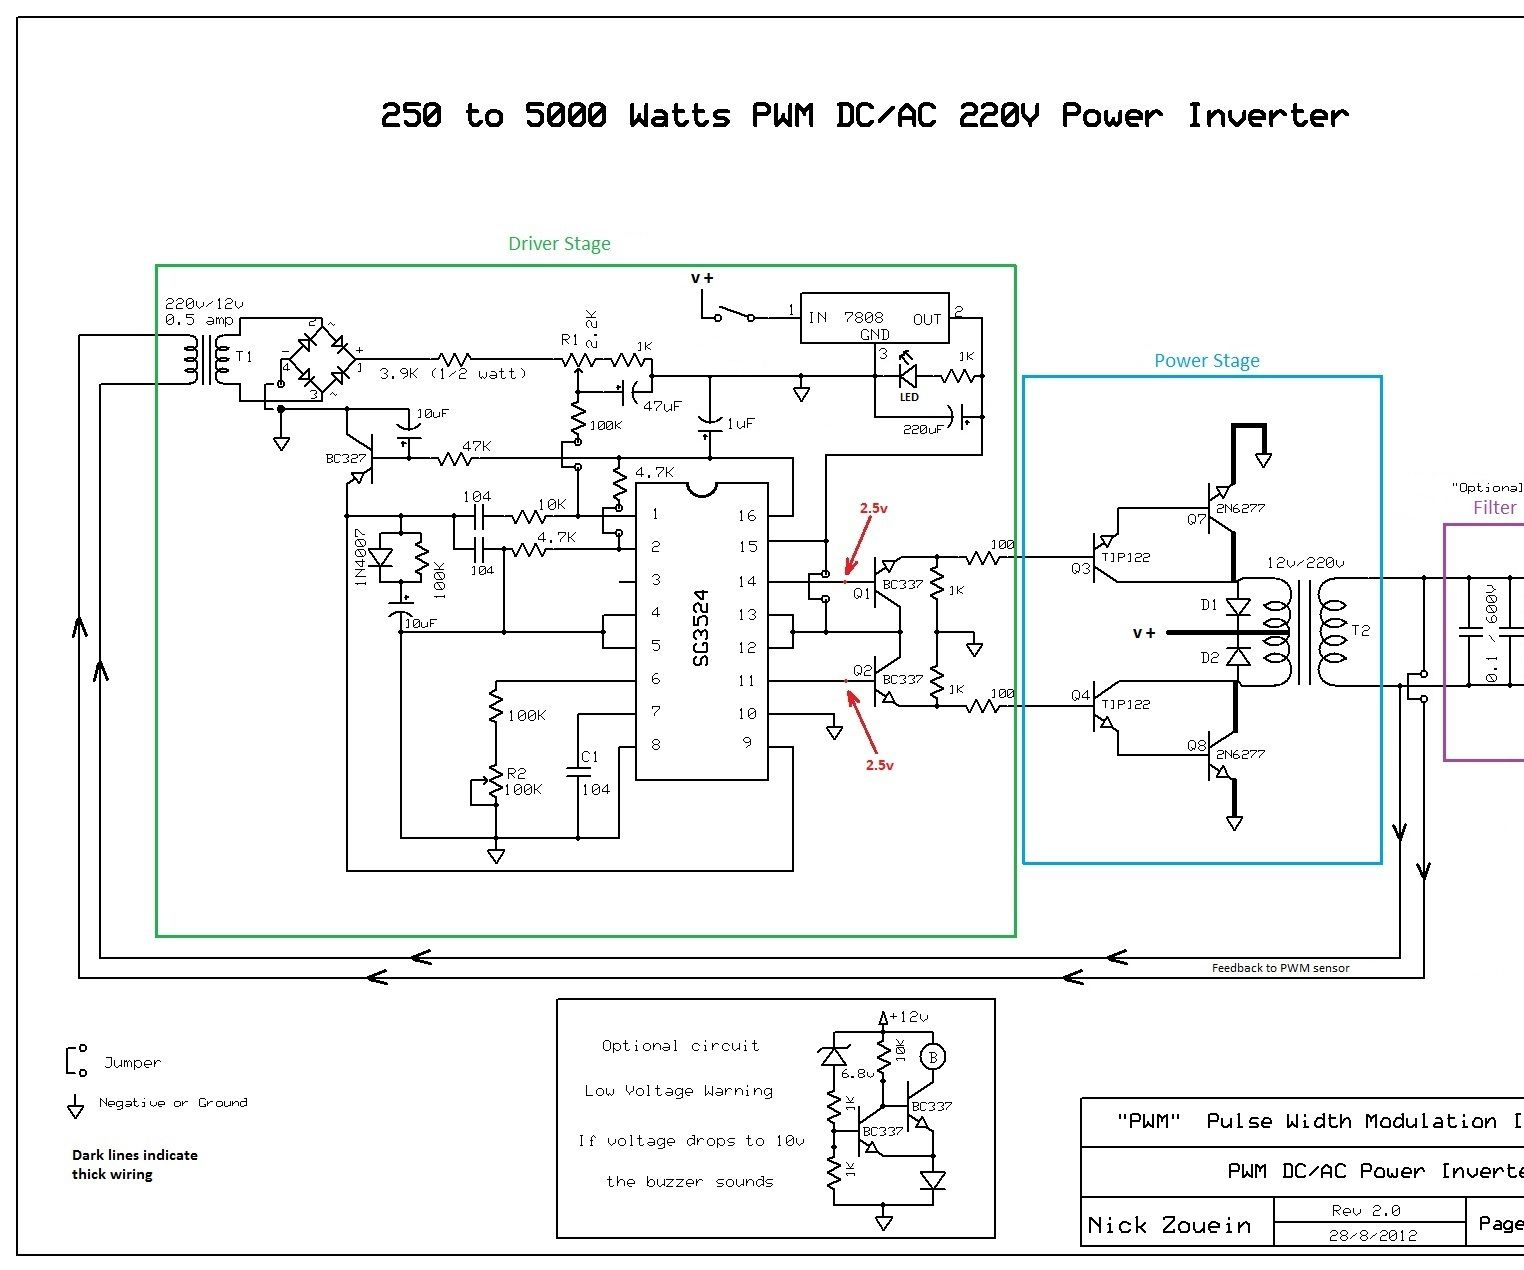 hight resolution of 250 to 5000 watts pwm dc ac 220v power inverter